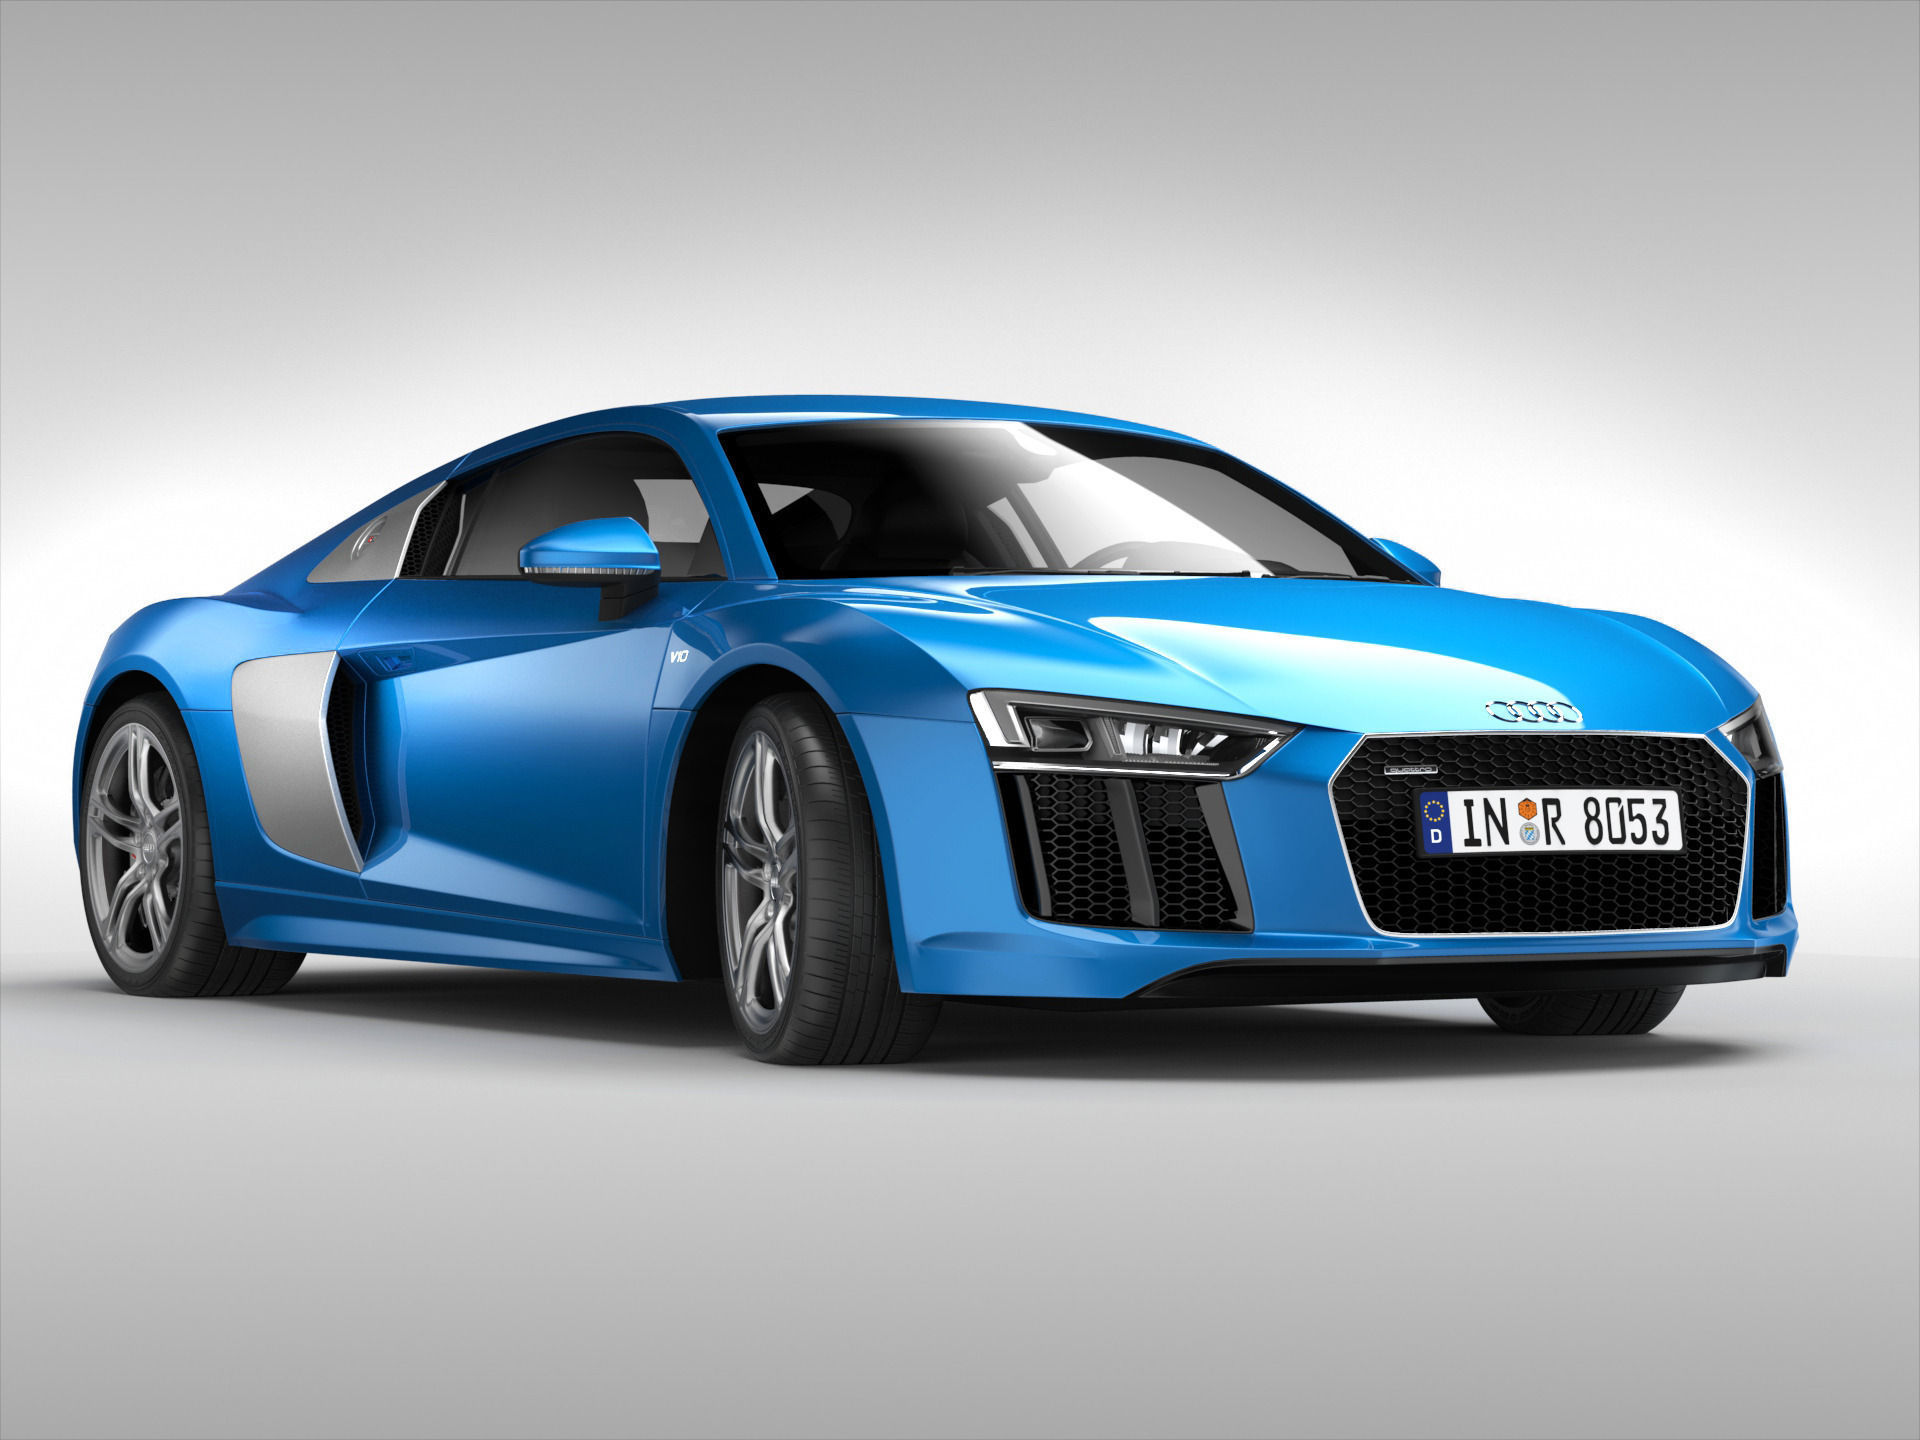 ... Audi R8 V10 Coupe 2016 3d Model Max Obj 3ds Fbx 4 ...